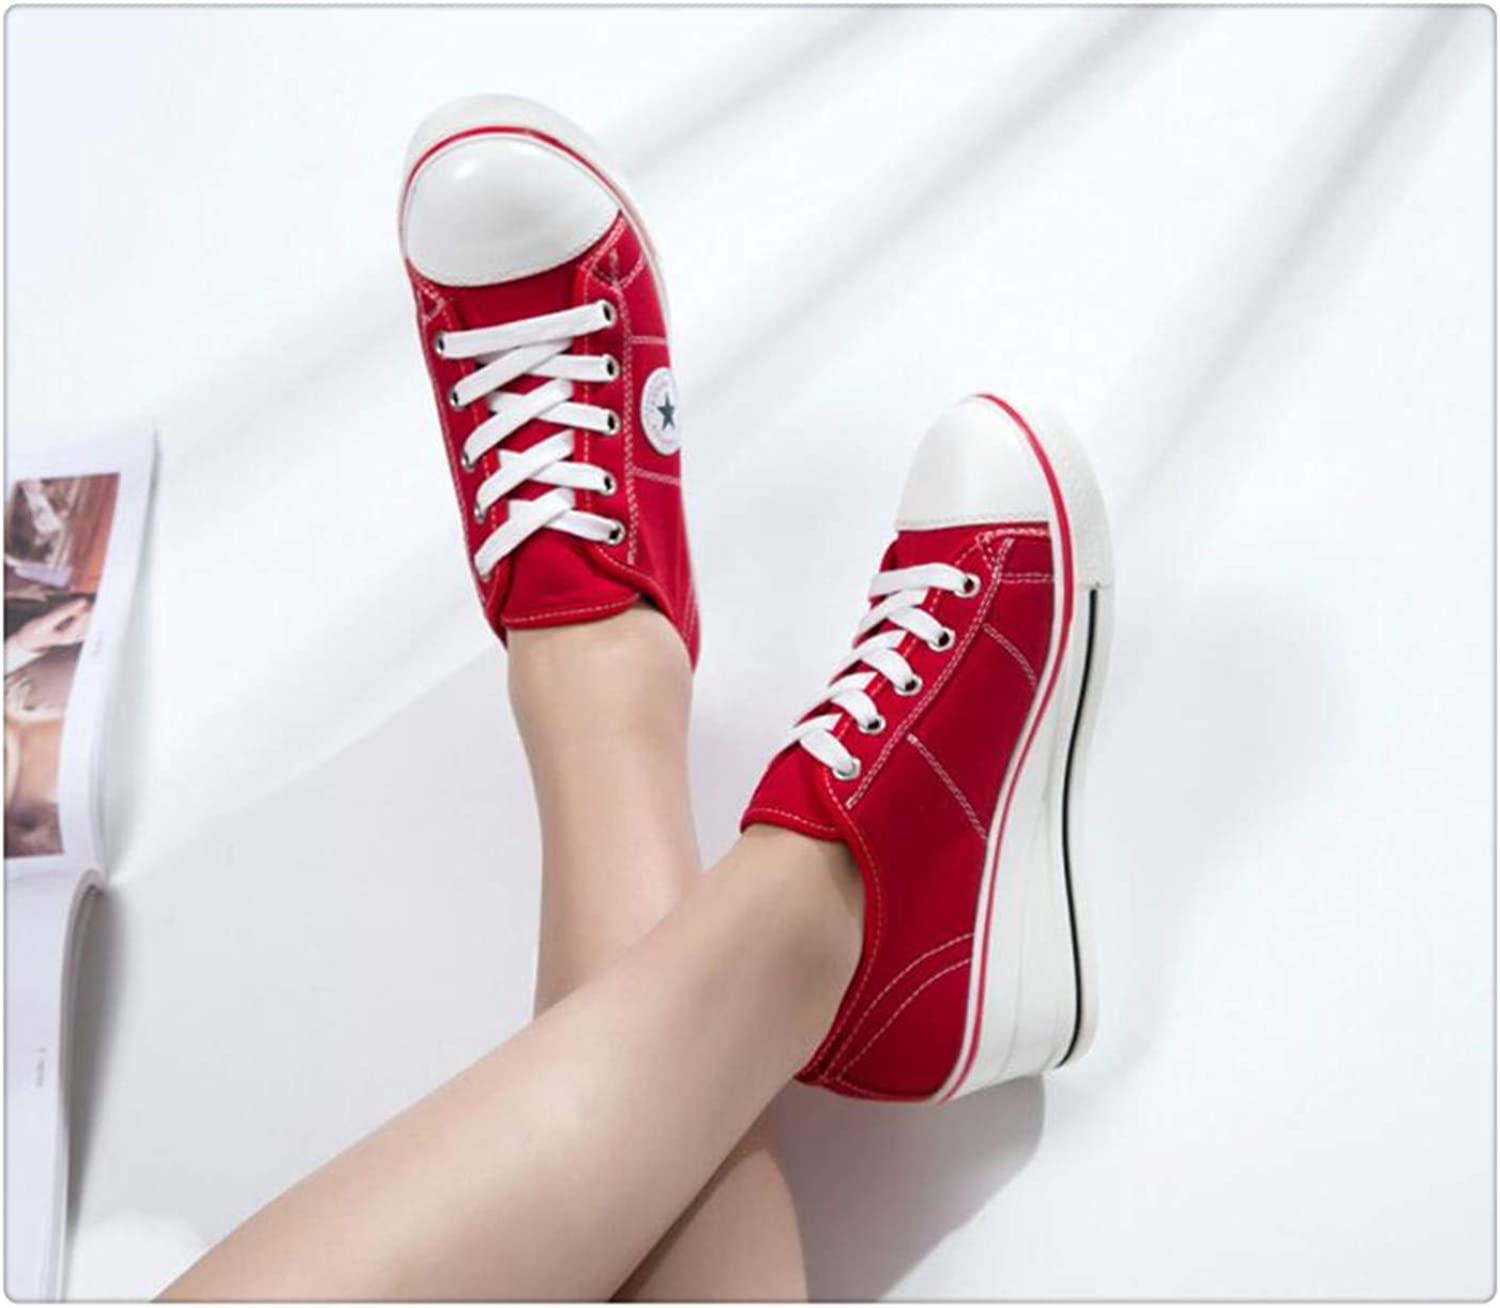 SSLOPY& 2019 Autumn White Women Sneakers Plus Size 41 42 Platform Wedge shoes Vulcanized shoes Woman Lace Up Female Casual Canvas shoes 6861 Red 6